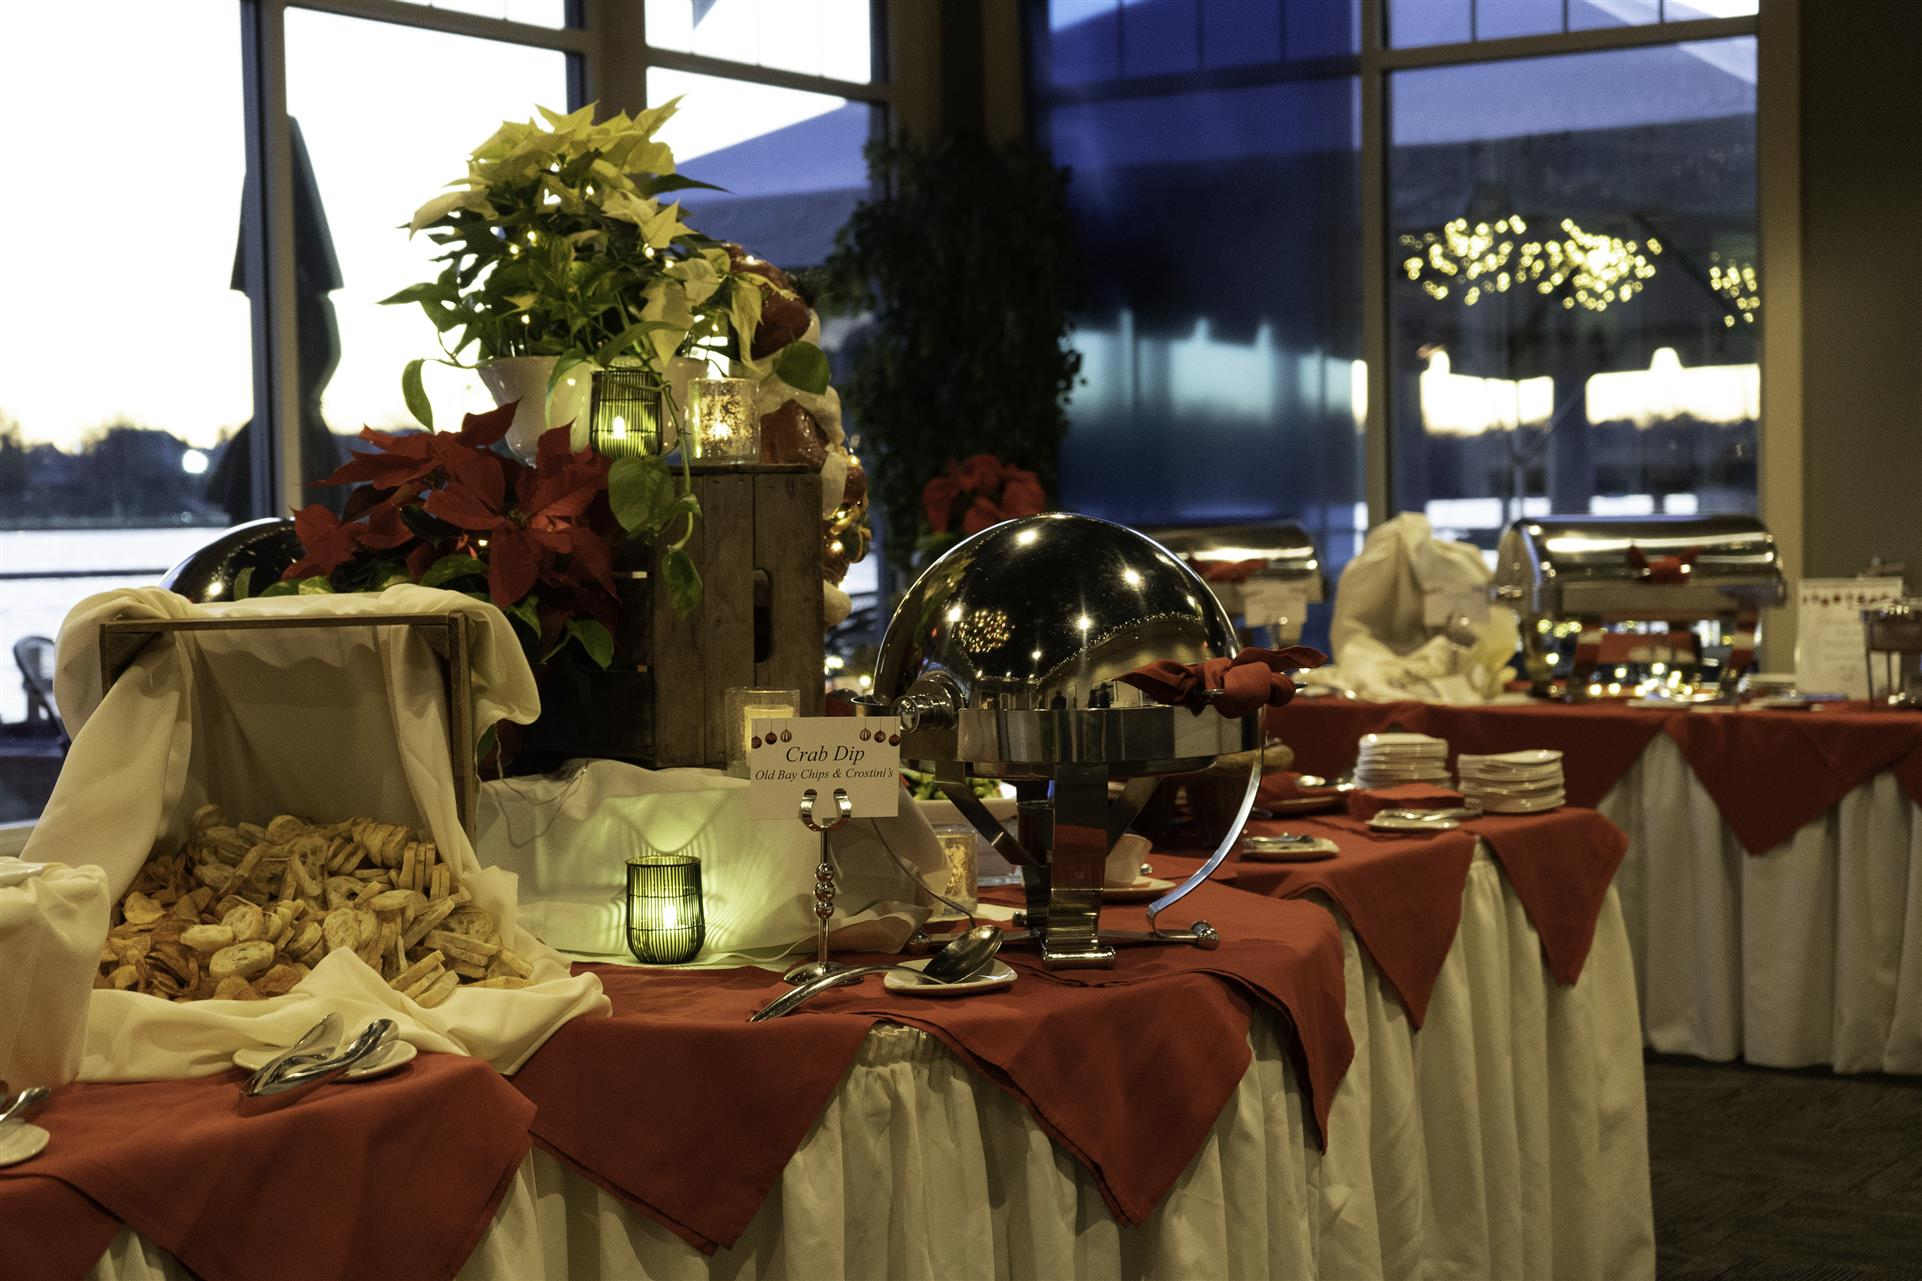 dessert spread with decorative flowers and candles